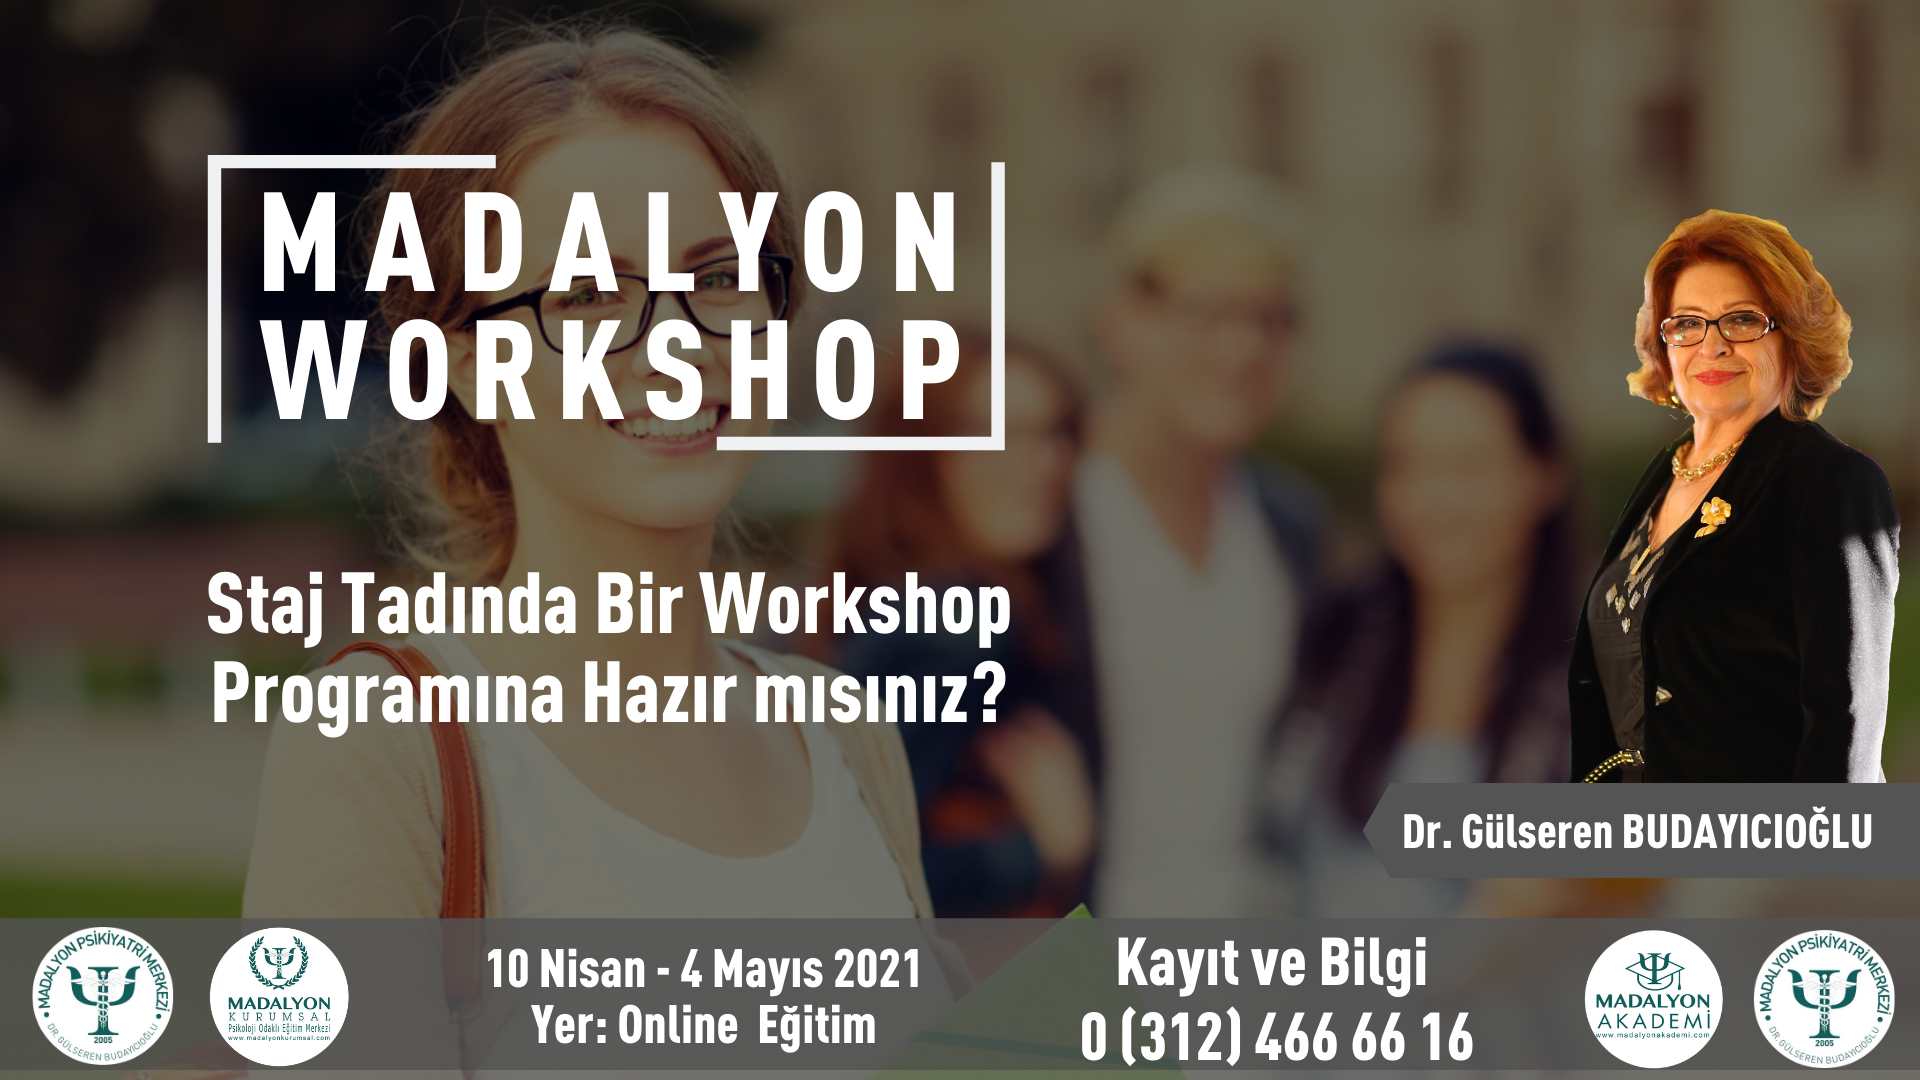 Madalyon Workshop Dr. Gülseren